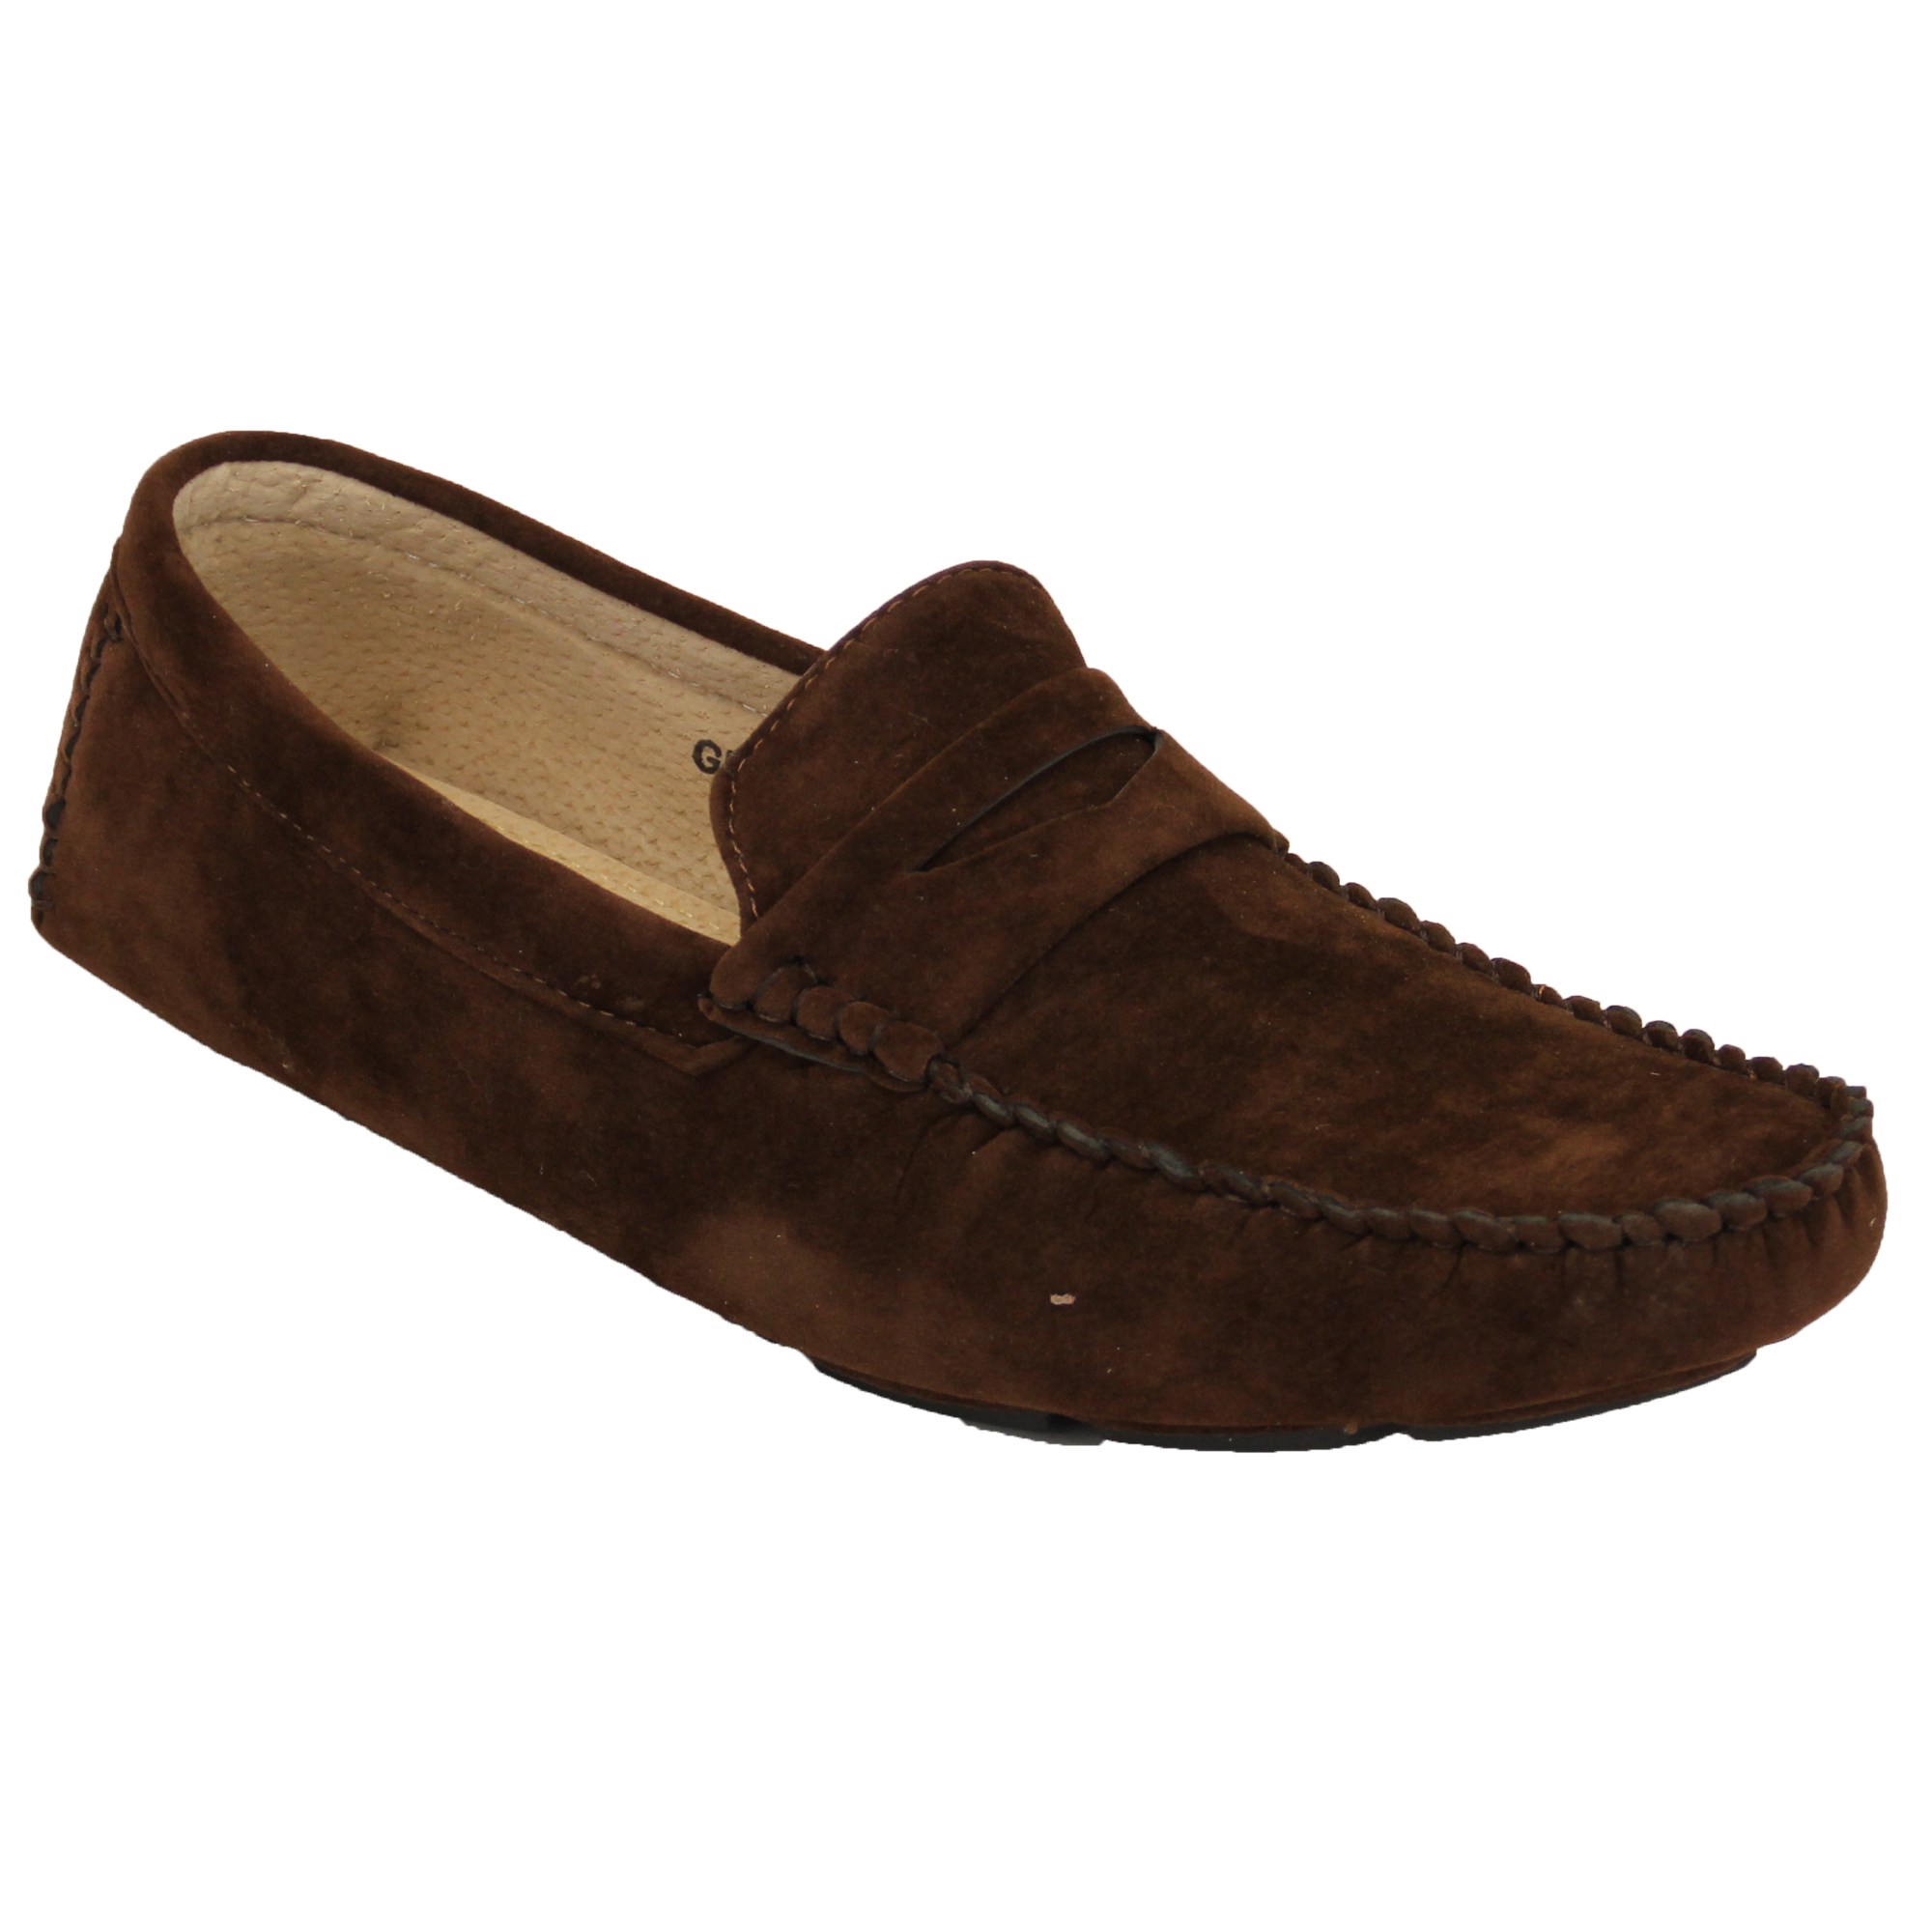 Mens-Moccasins-Suede-Leather-Look-Shoes-Boat-Slip-On-Tassel-Loafers-Smart-Formal thumbnail 6